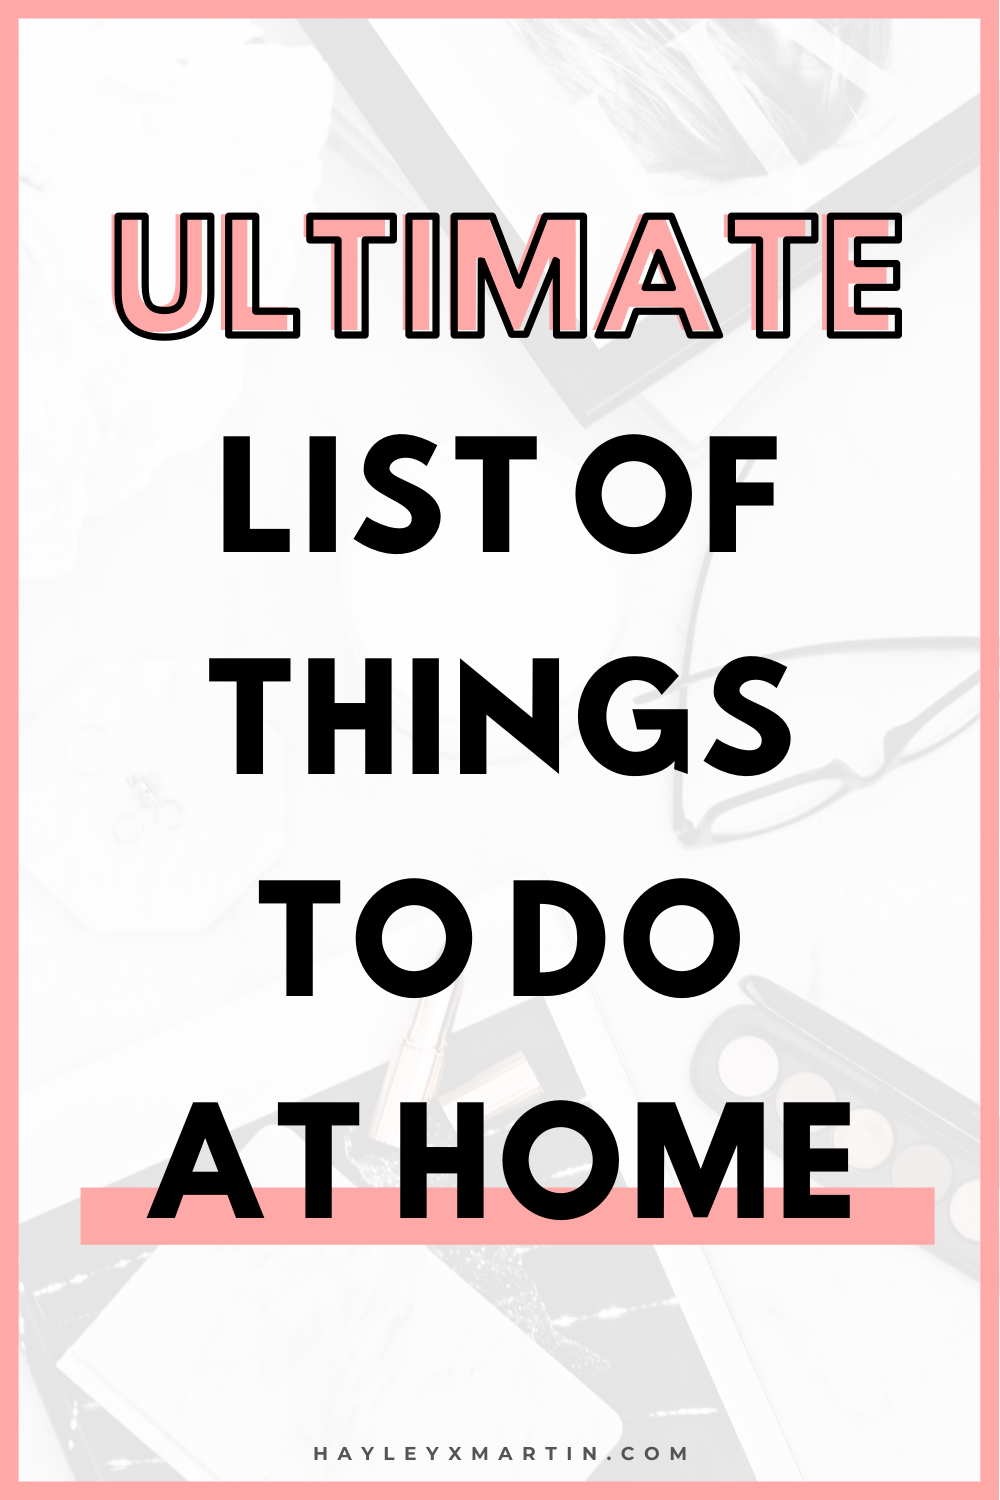 ULTIMATE LIST OF THINGS TO DO AT HOME | HAYLEYXMARTIN